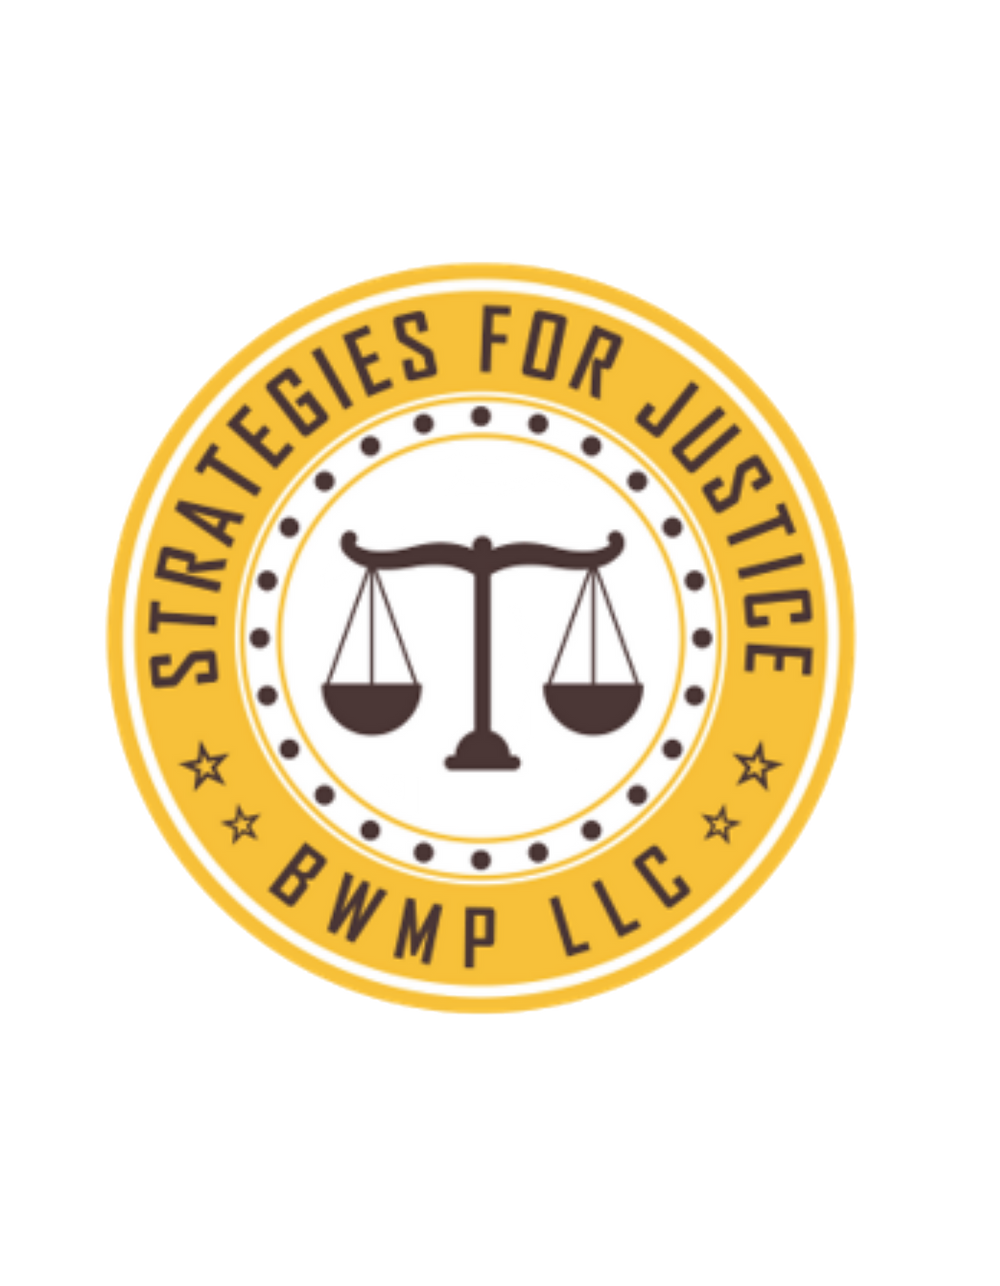 Strategies for Justice Logo